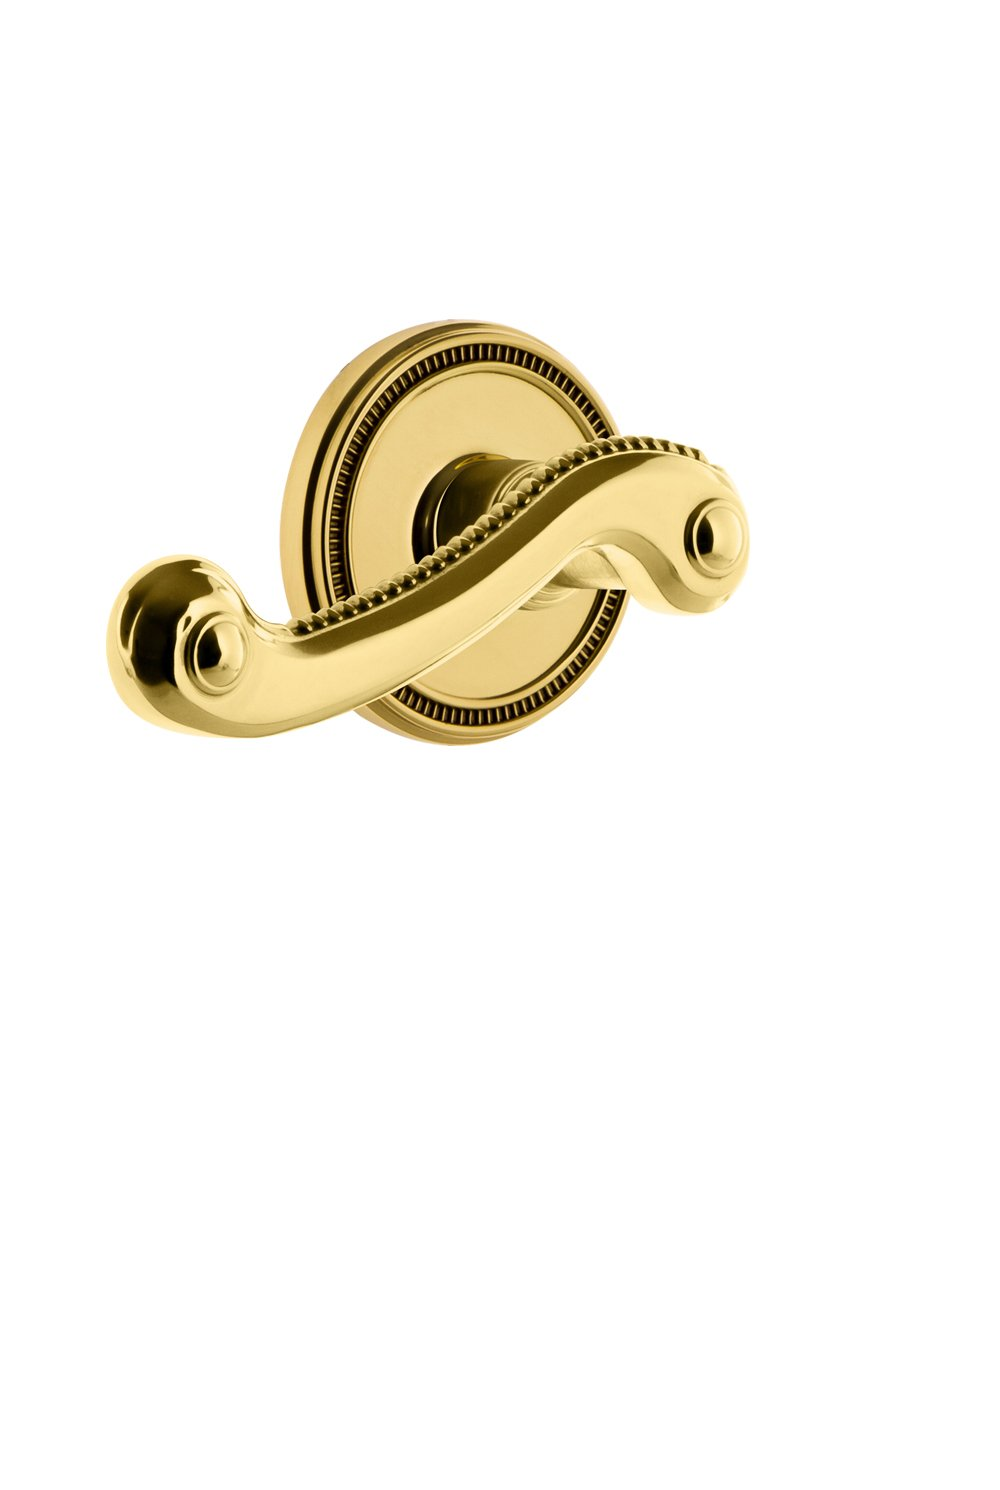 Grandeur 820585 Soleil Rosette Double Dummy with Newport Lever in Lifetime Brass